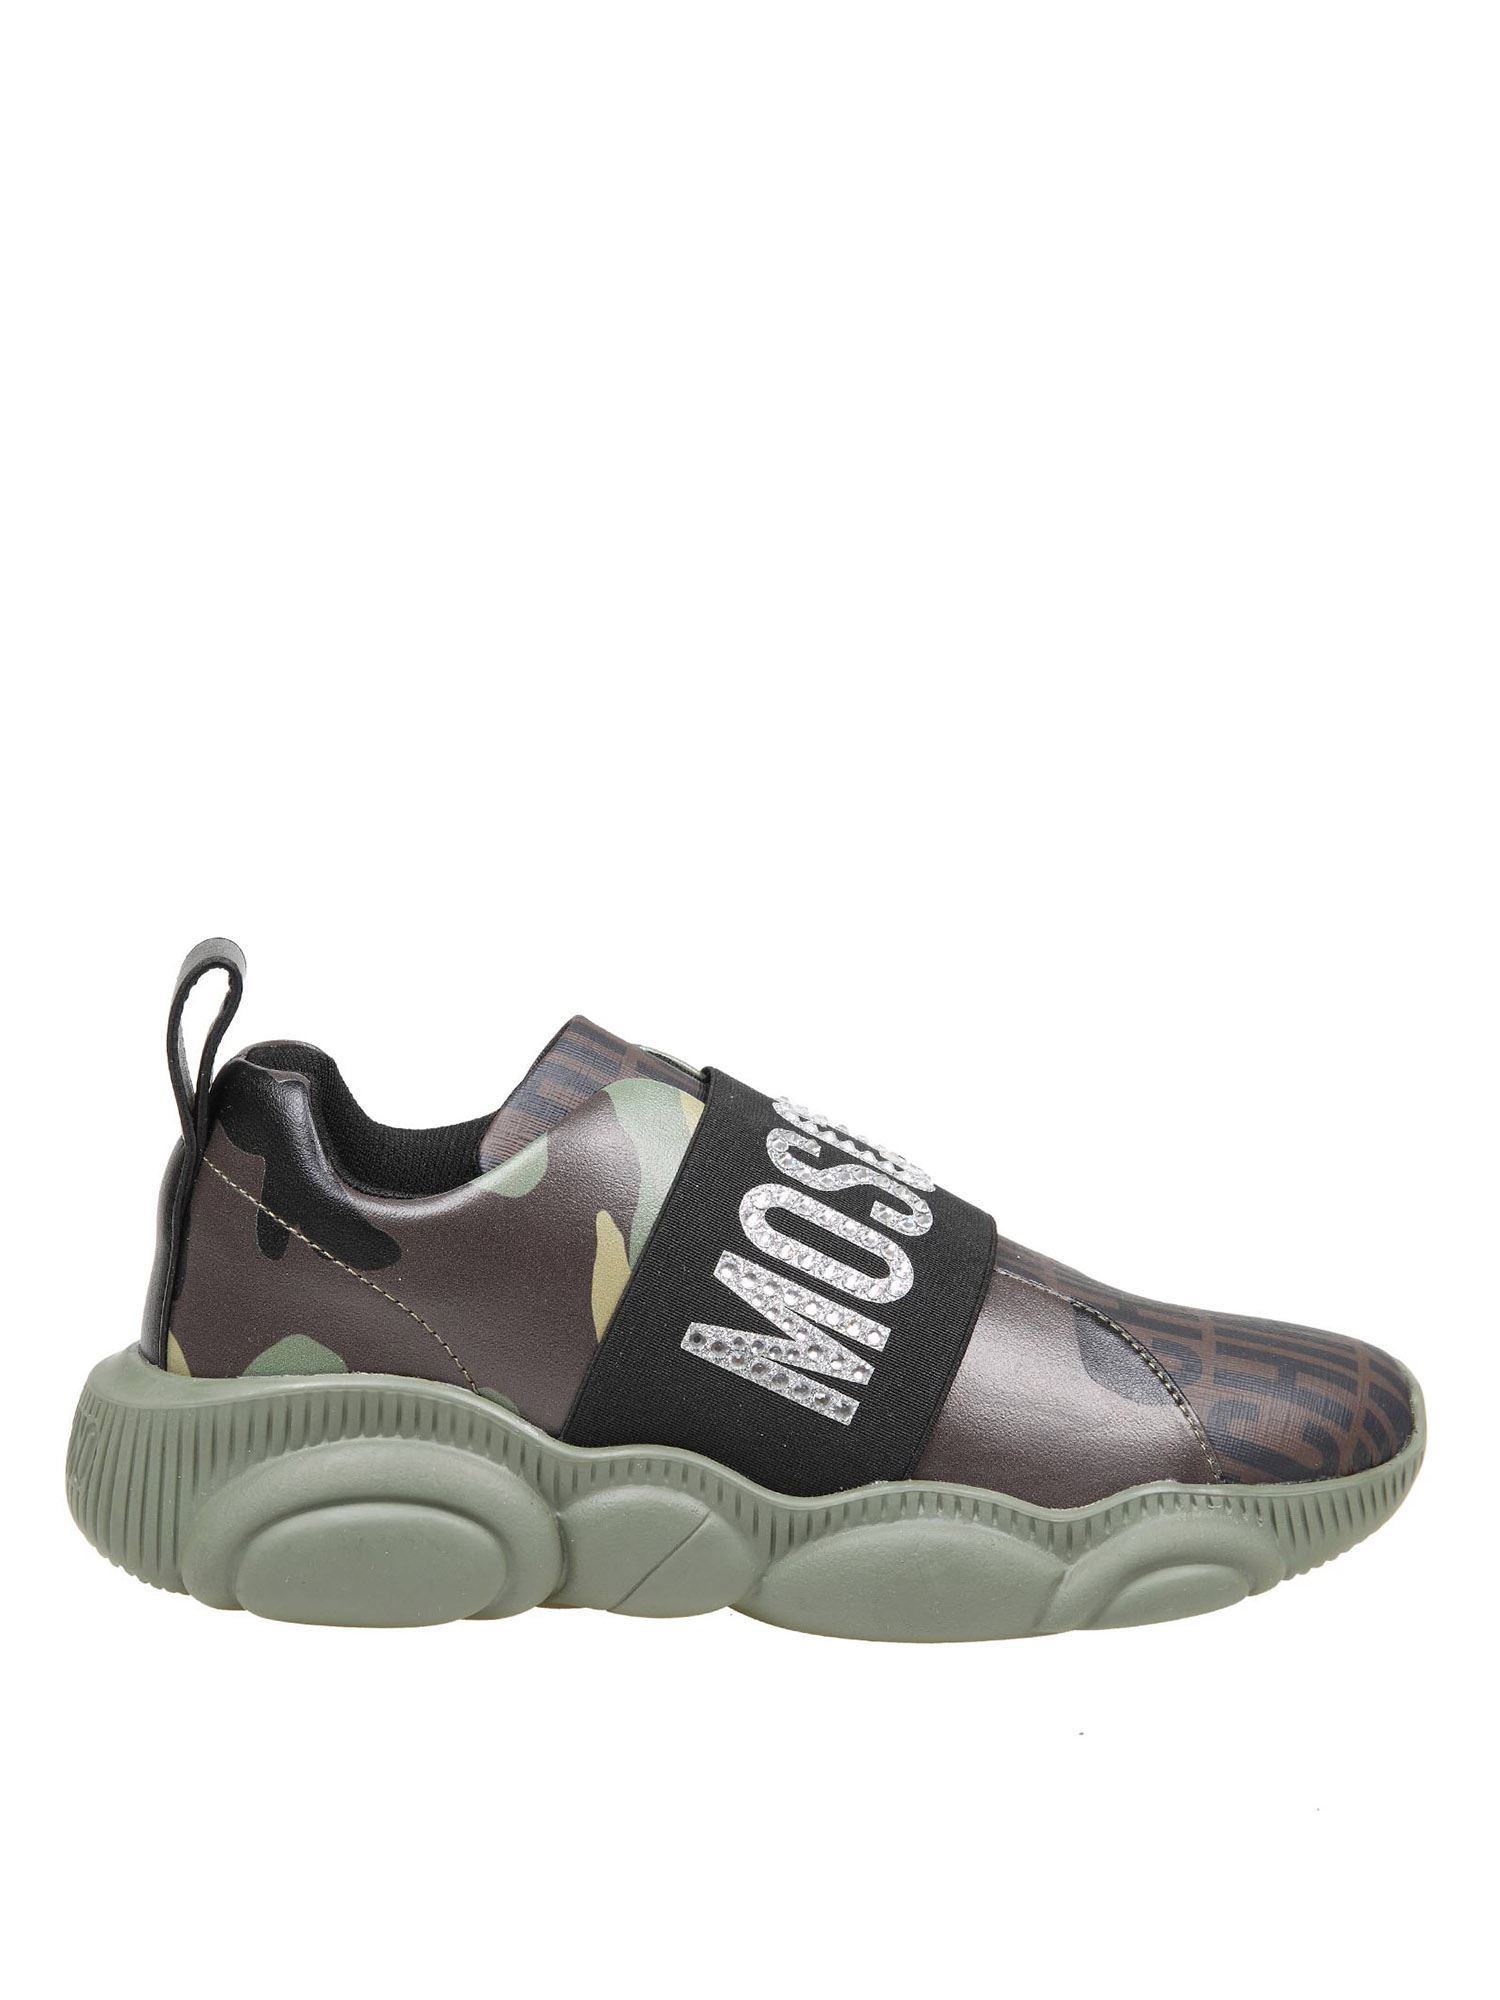 Moschino TEDDY LOST FOUND SNEAKERS IN BROWN